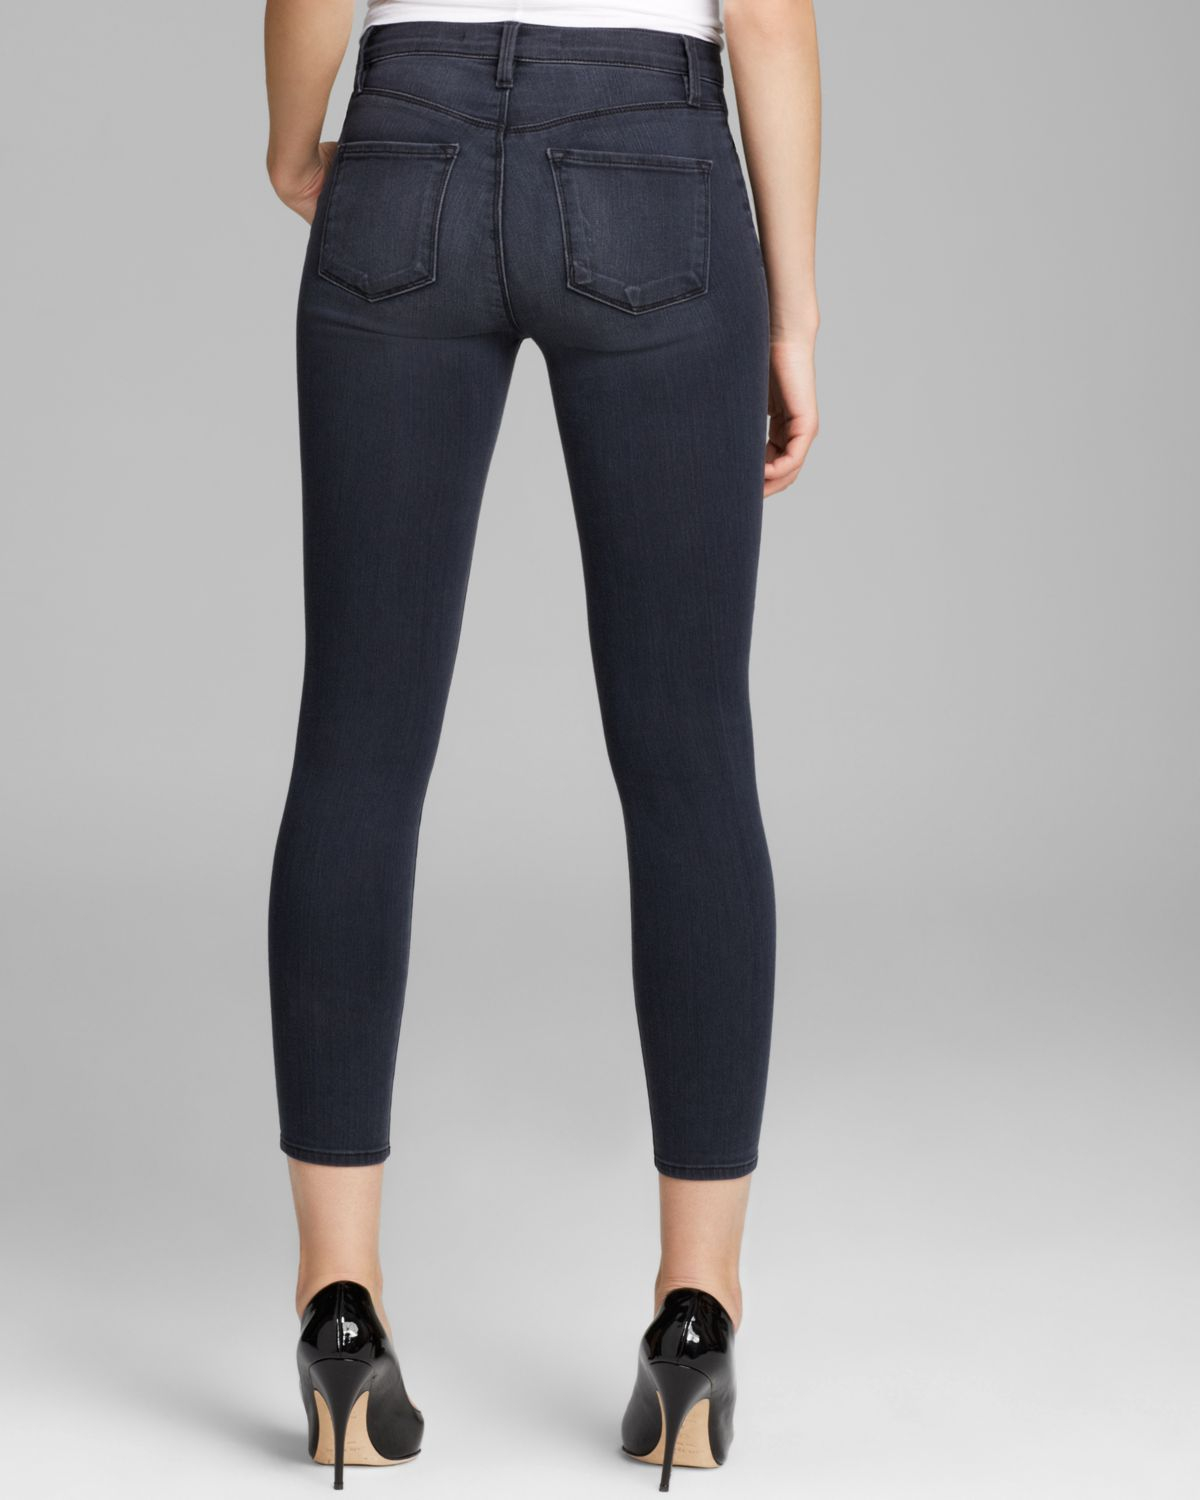 Alana Cropped High-rise Skinny Jeans - Dark denim J Brand Cheap Sale Lowest Price Discount Factory Outlet Discount Wiki Affordable How Much Online 7zUsaCt